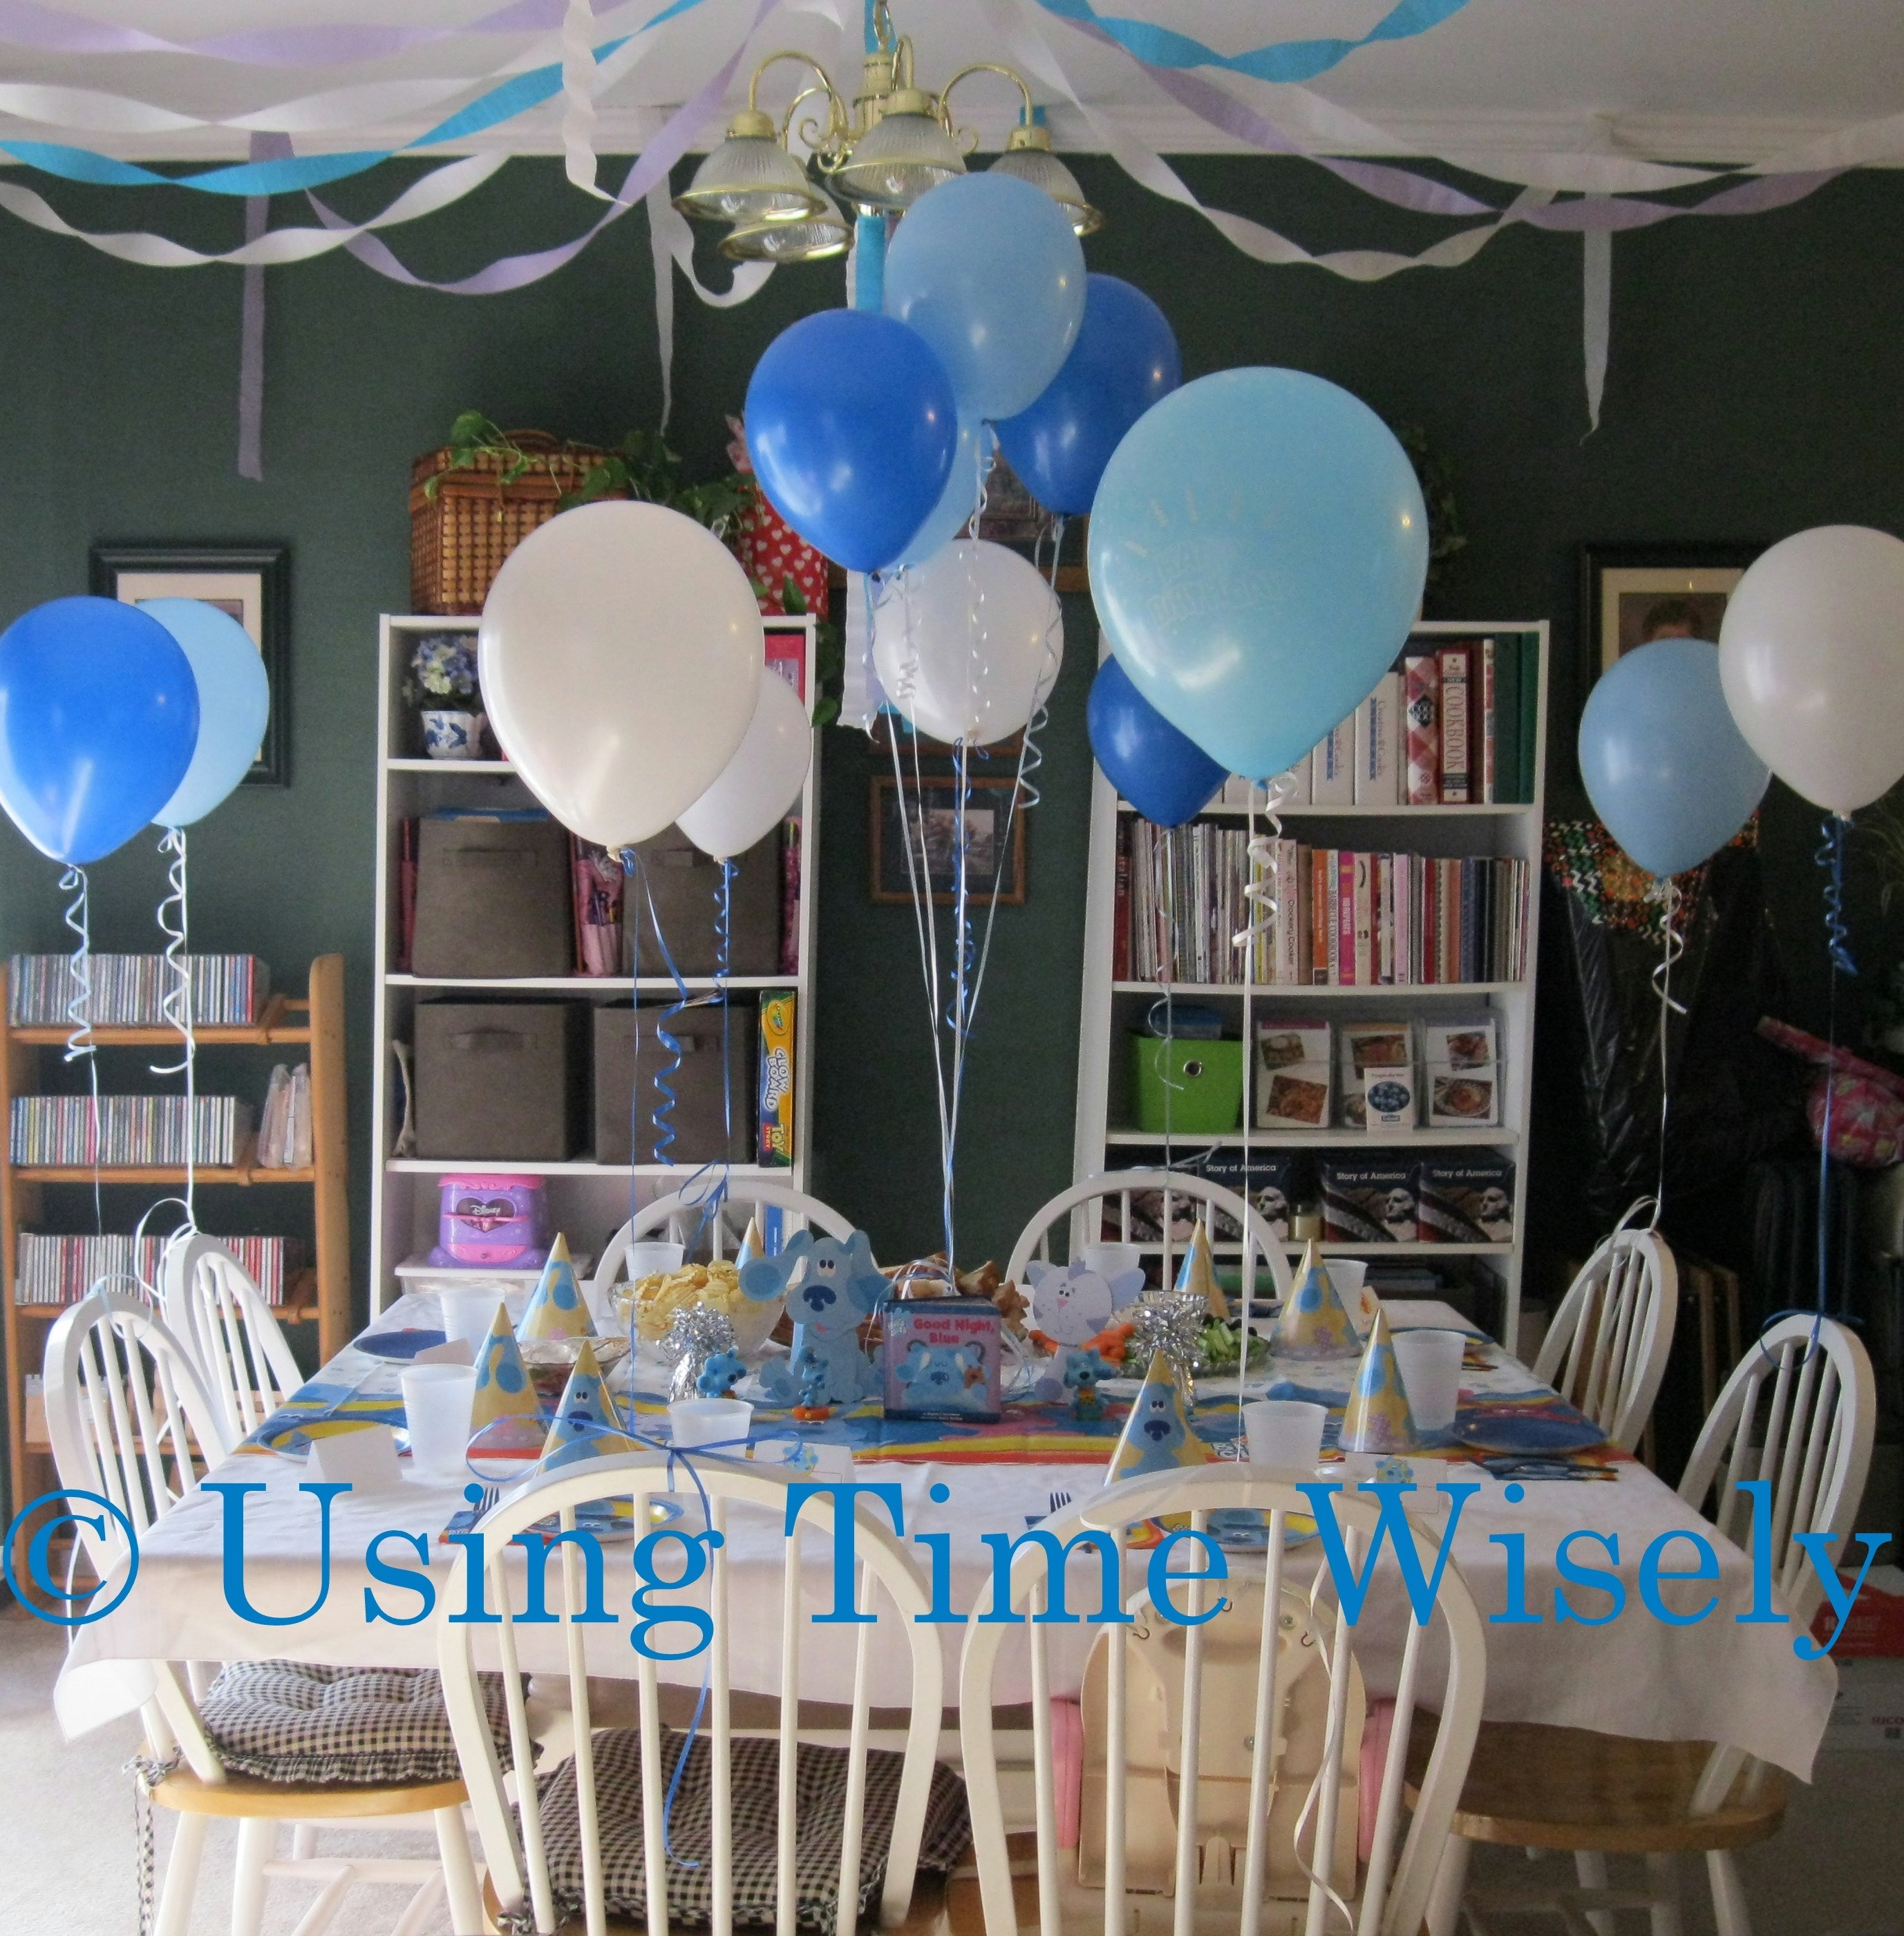 10 Most Recommended 2 Year Old Bday Party Ideas blues clues birthday decorations my birthday pinterest blues 3 2020